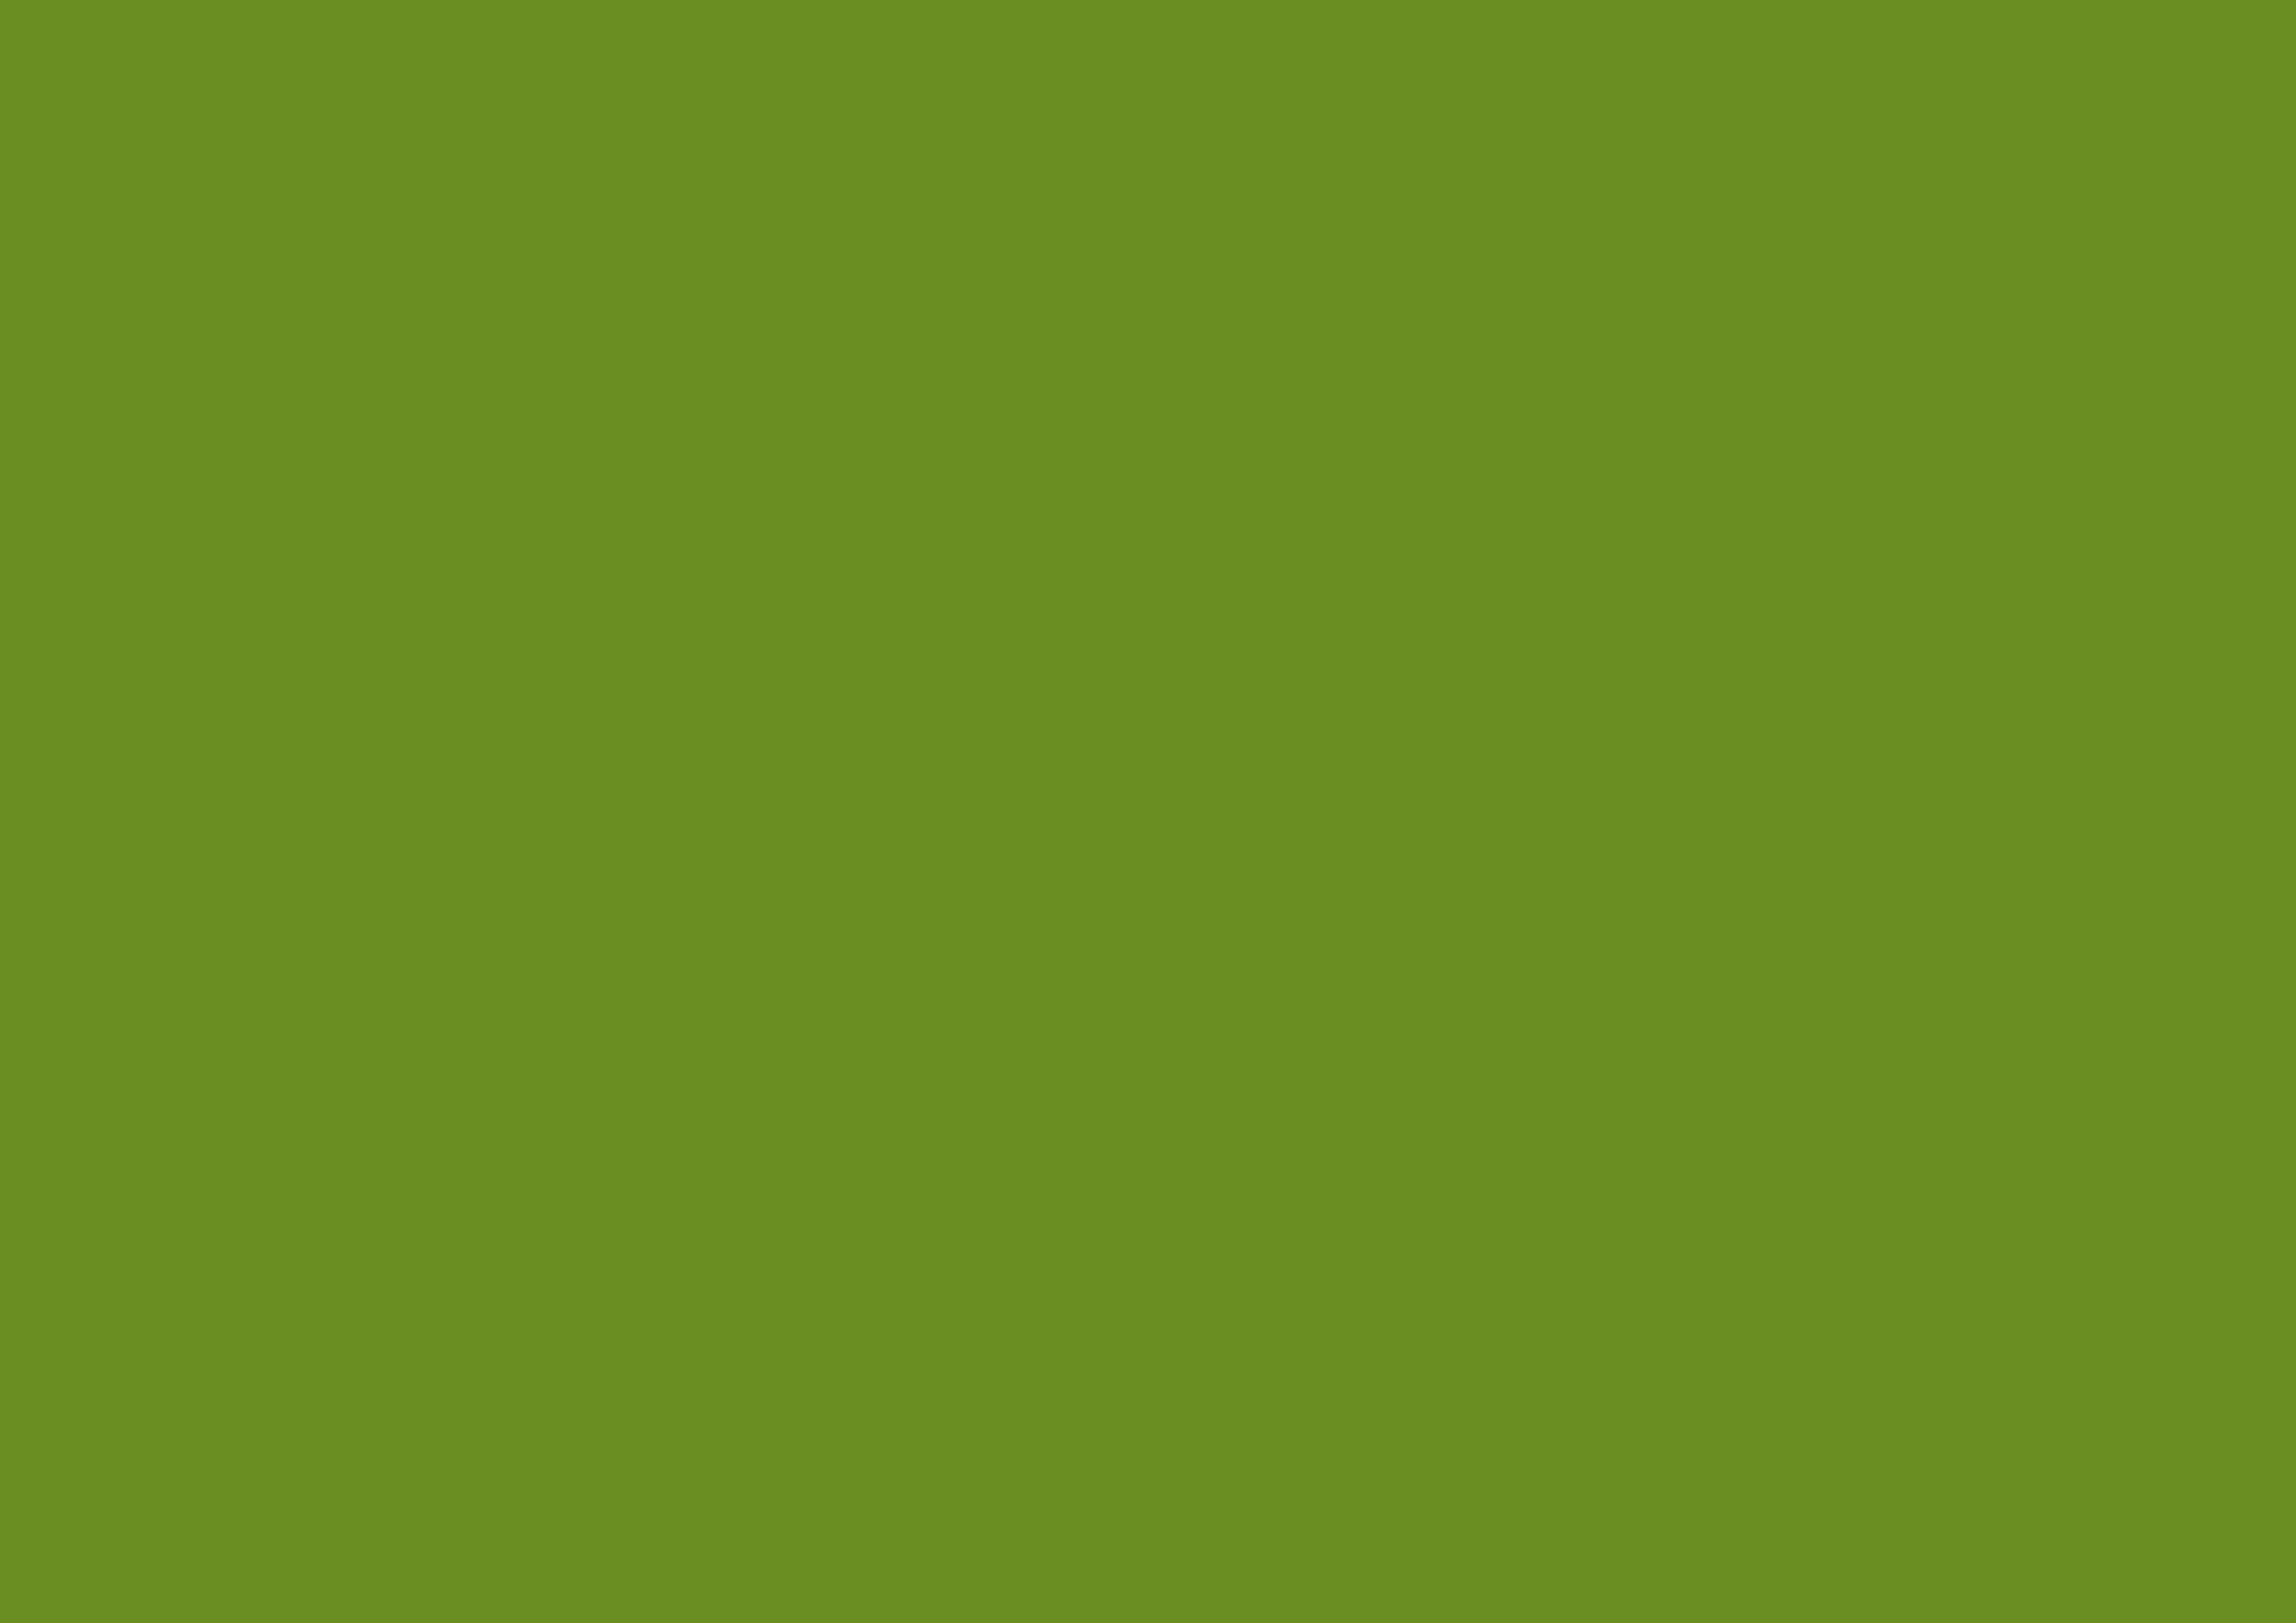 3508x2480 Olive Drab Number Three Solid Color Background